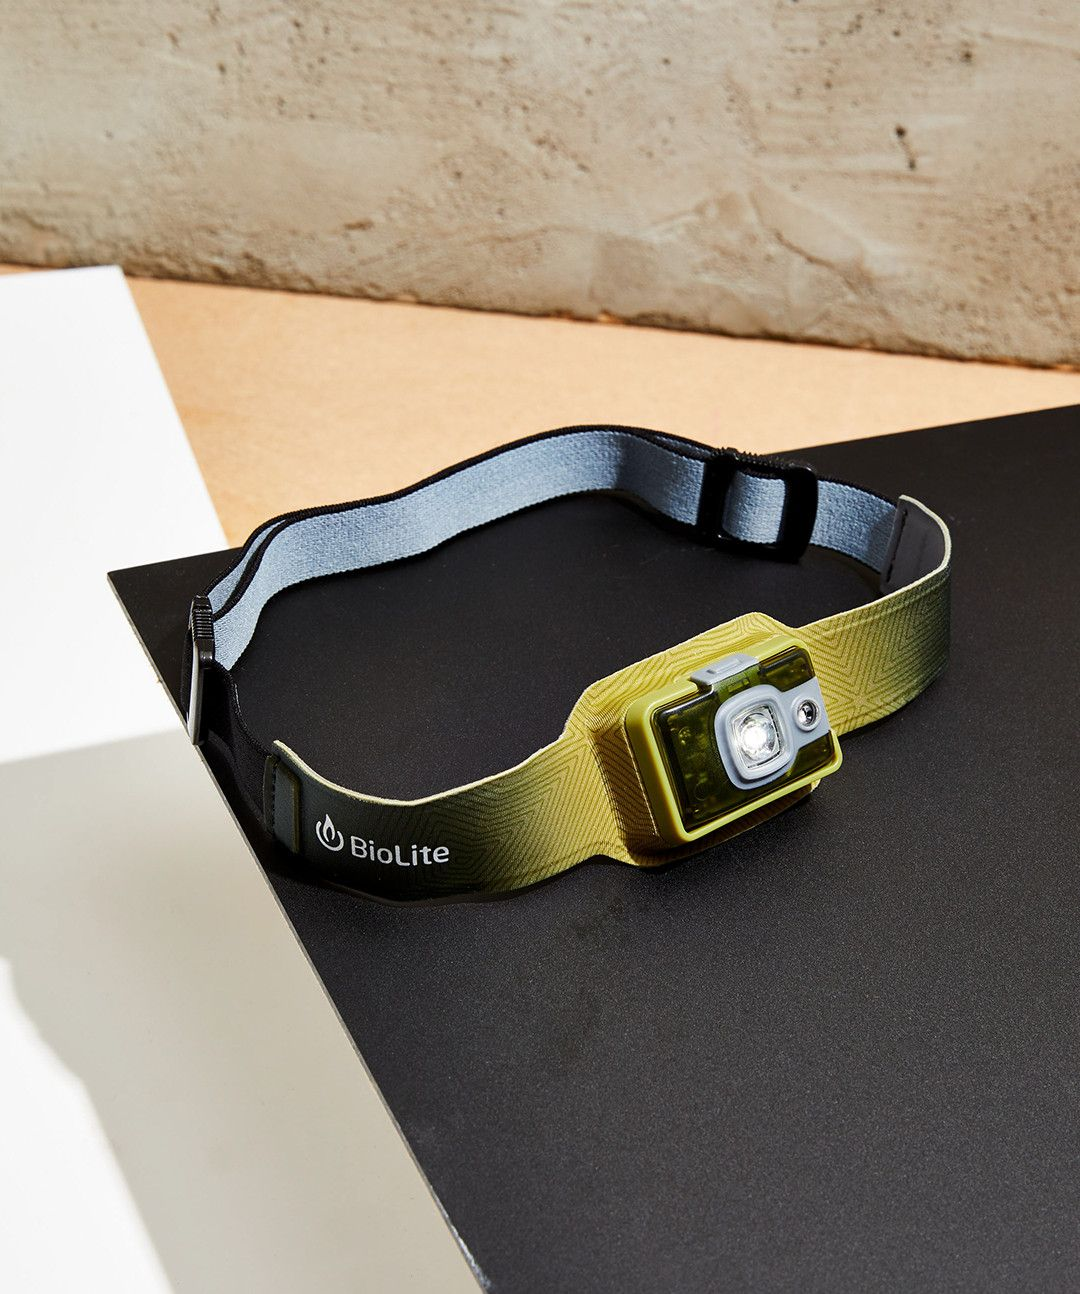 There Are Few Problems That the BioLite Headlamp 200 Can't Solve